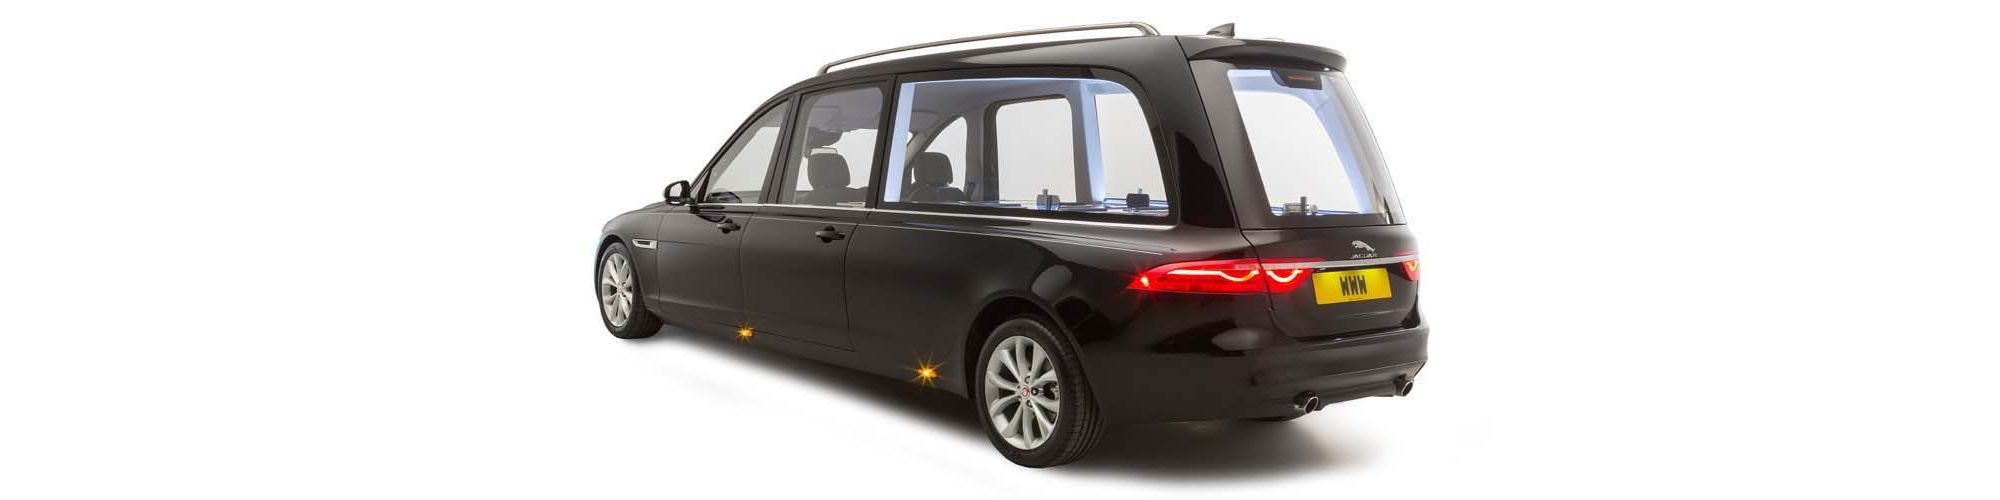 Wilcox 5 Door Hearse based on Jaguar XF